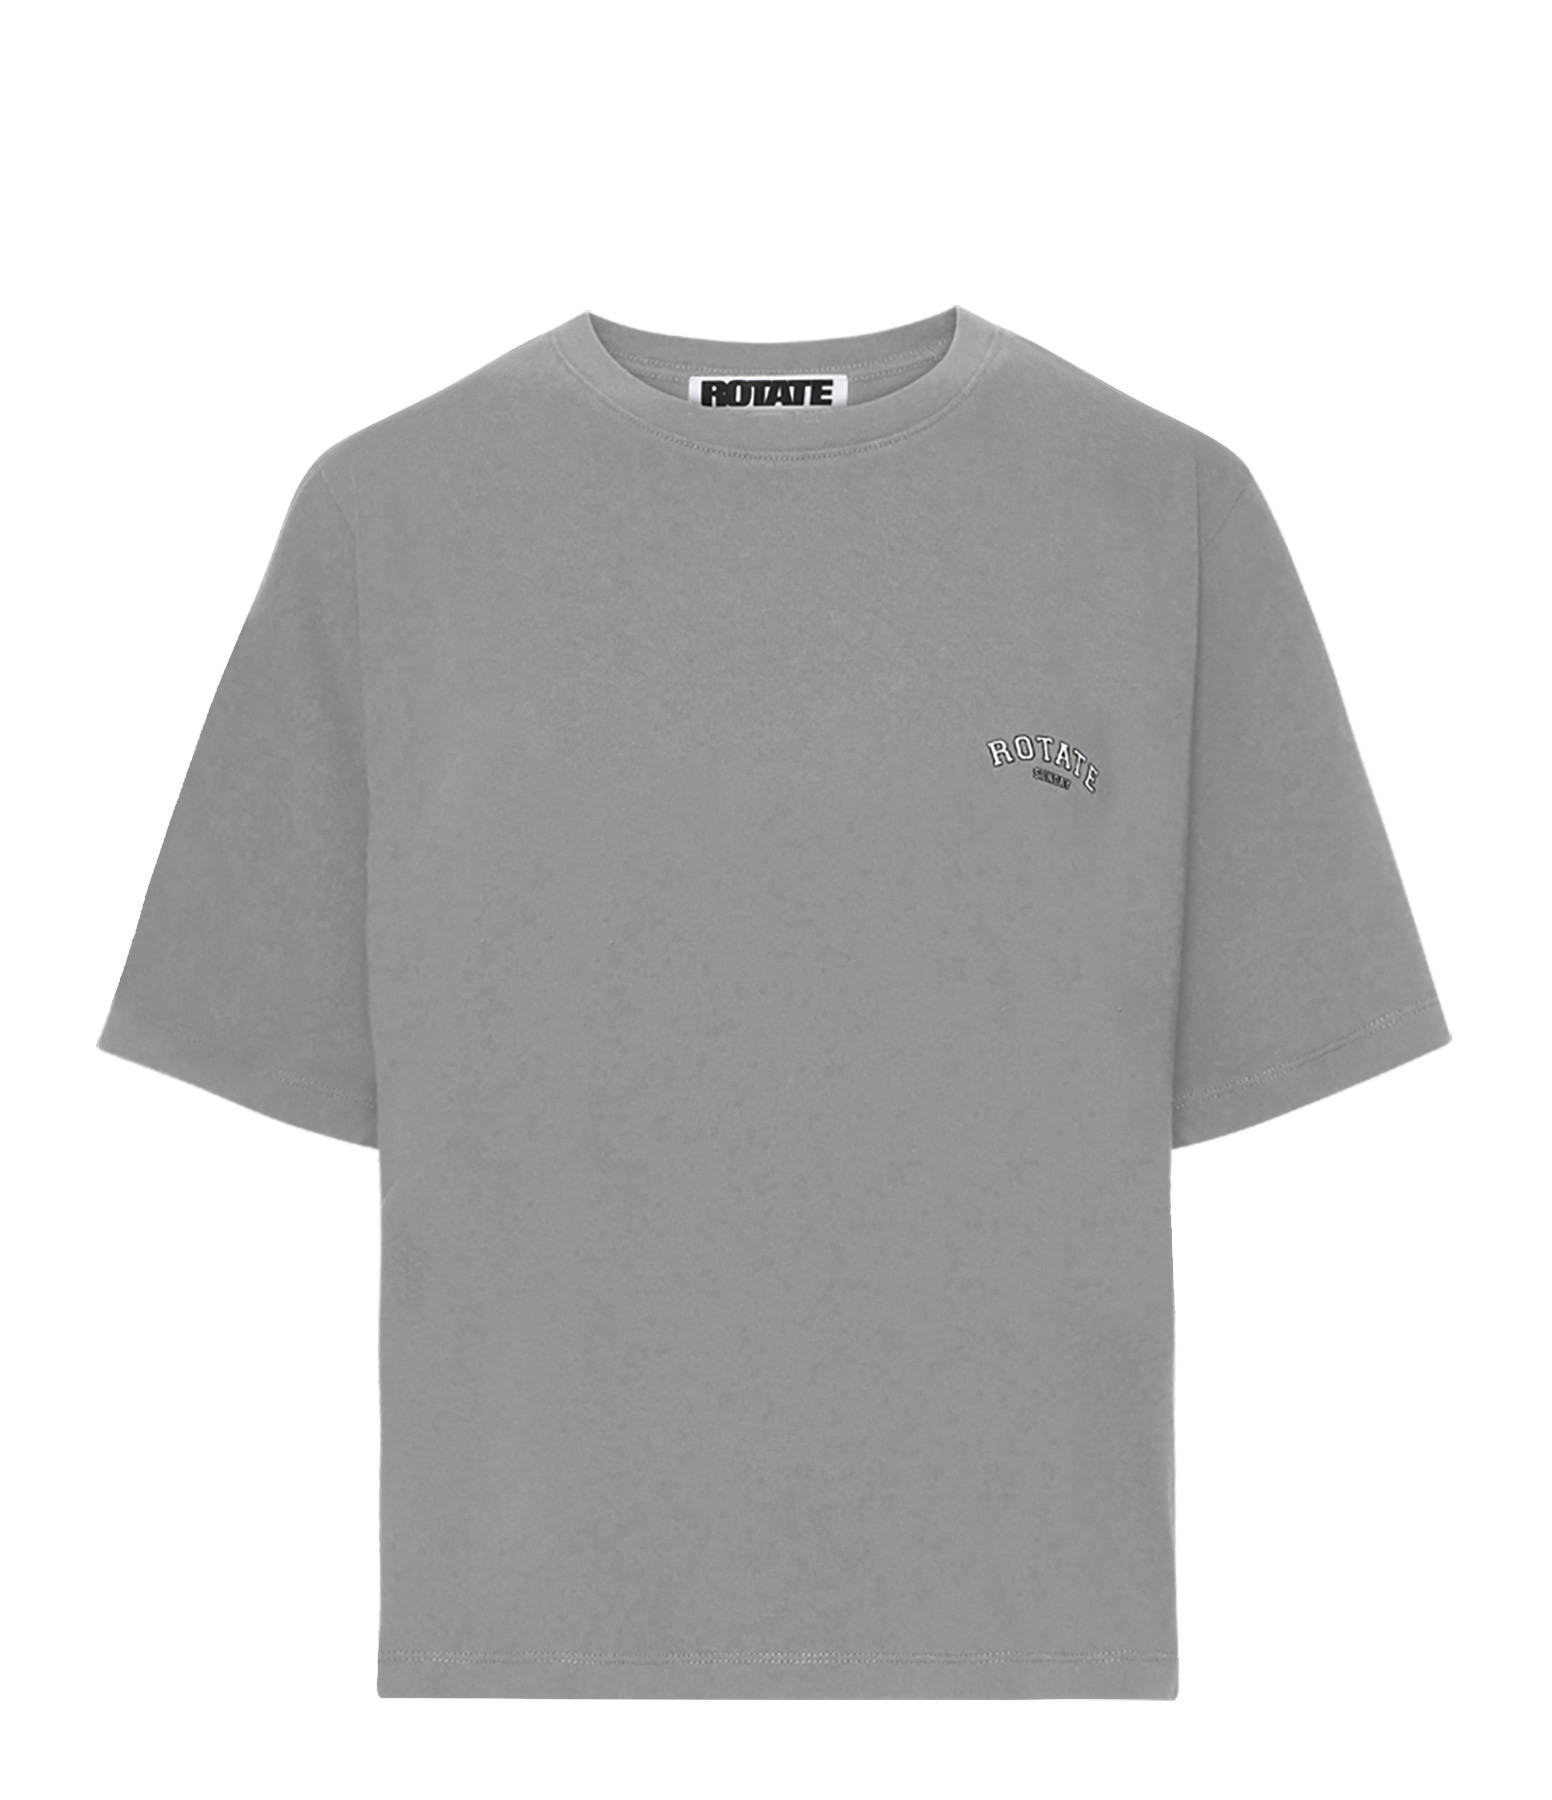 ROTATE - Tee-shirt Aster Coton Biologique Gris, Capsule Sun